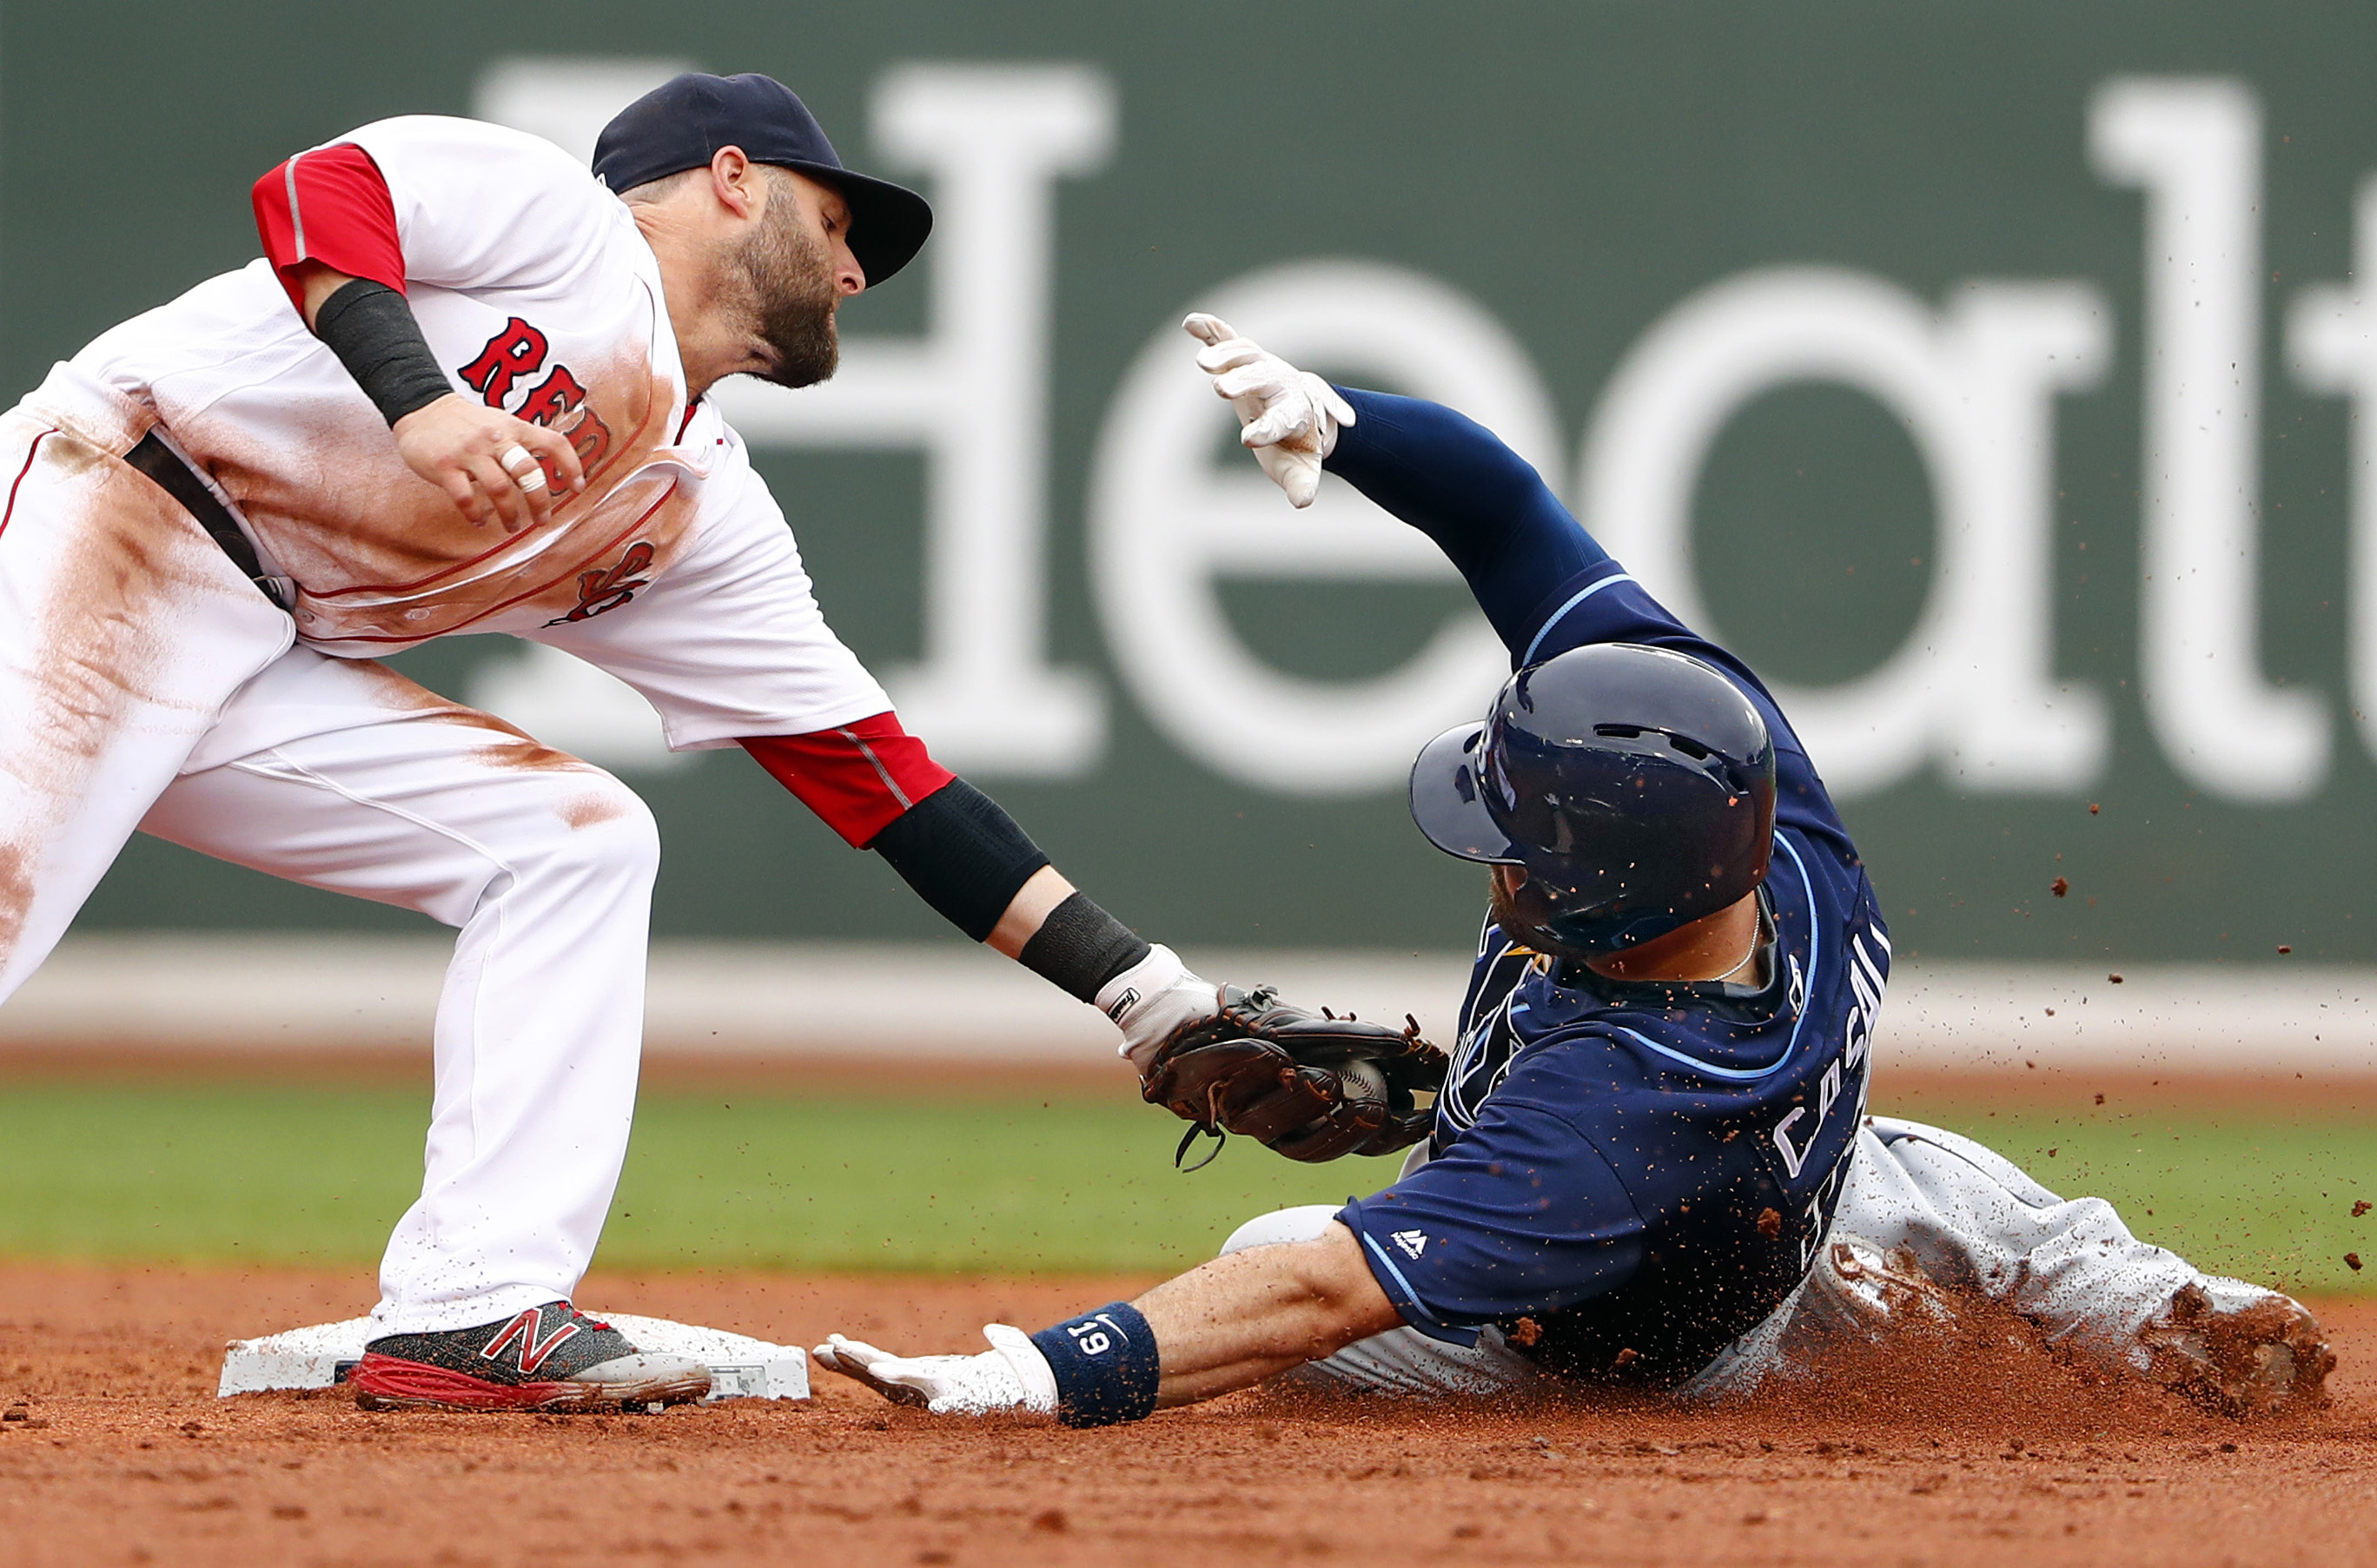 Boston Red Sox second baseman Dustin Pedroia tags out Tampa Bay Rays' Curt Casali at second trying to stretch a single into a double during the second inning of a baseball game at Fenway Park in Boston Sunday, July 10, 2016. (AP Photo/Winslow Townson)